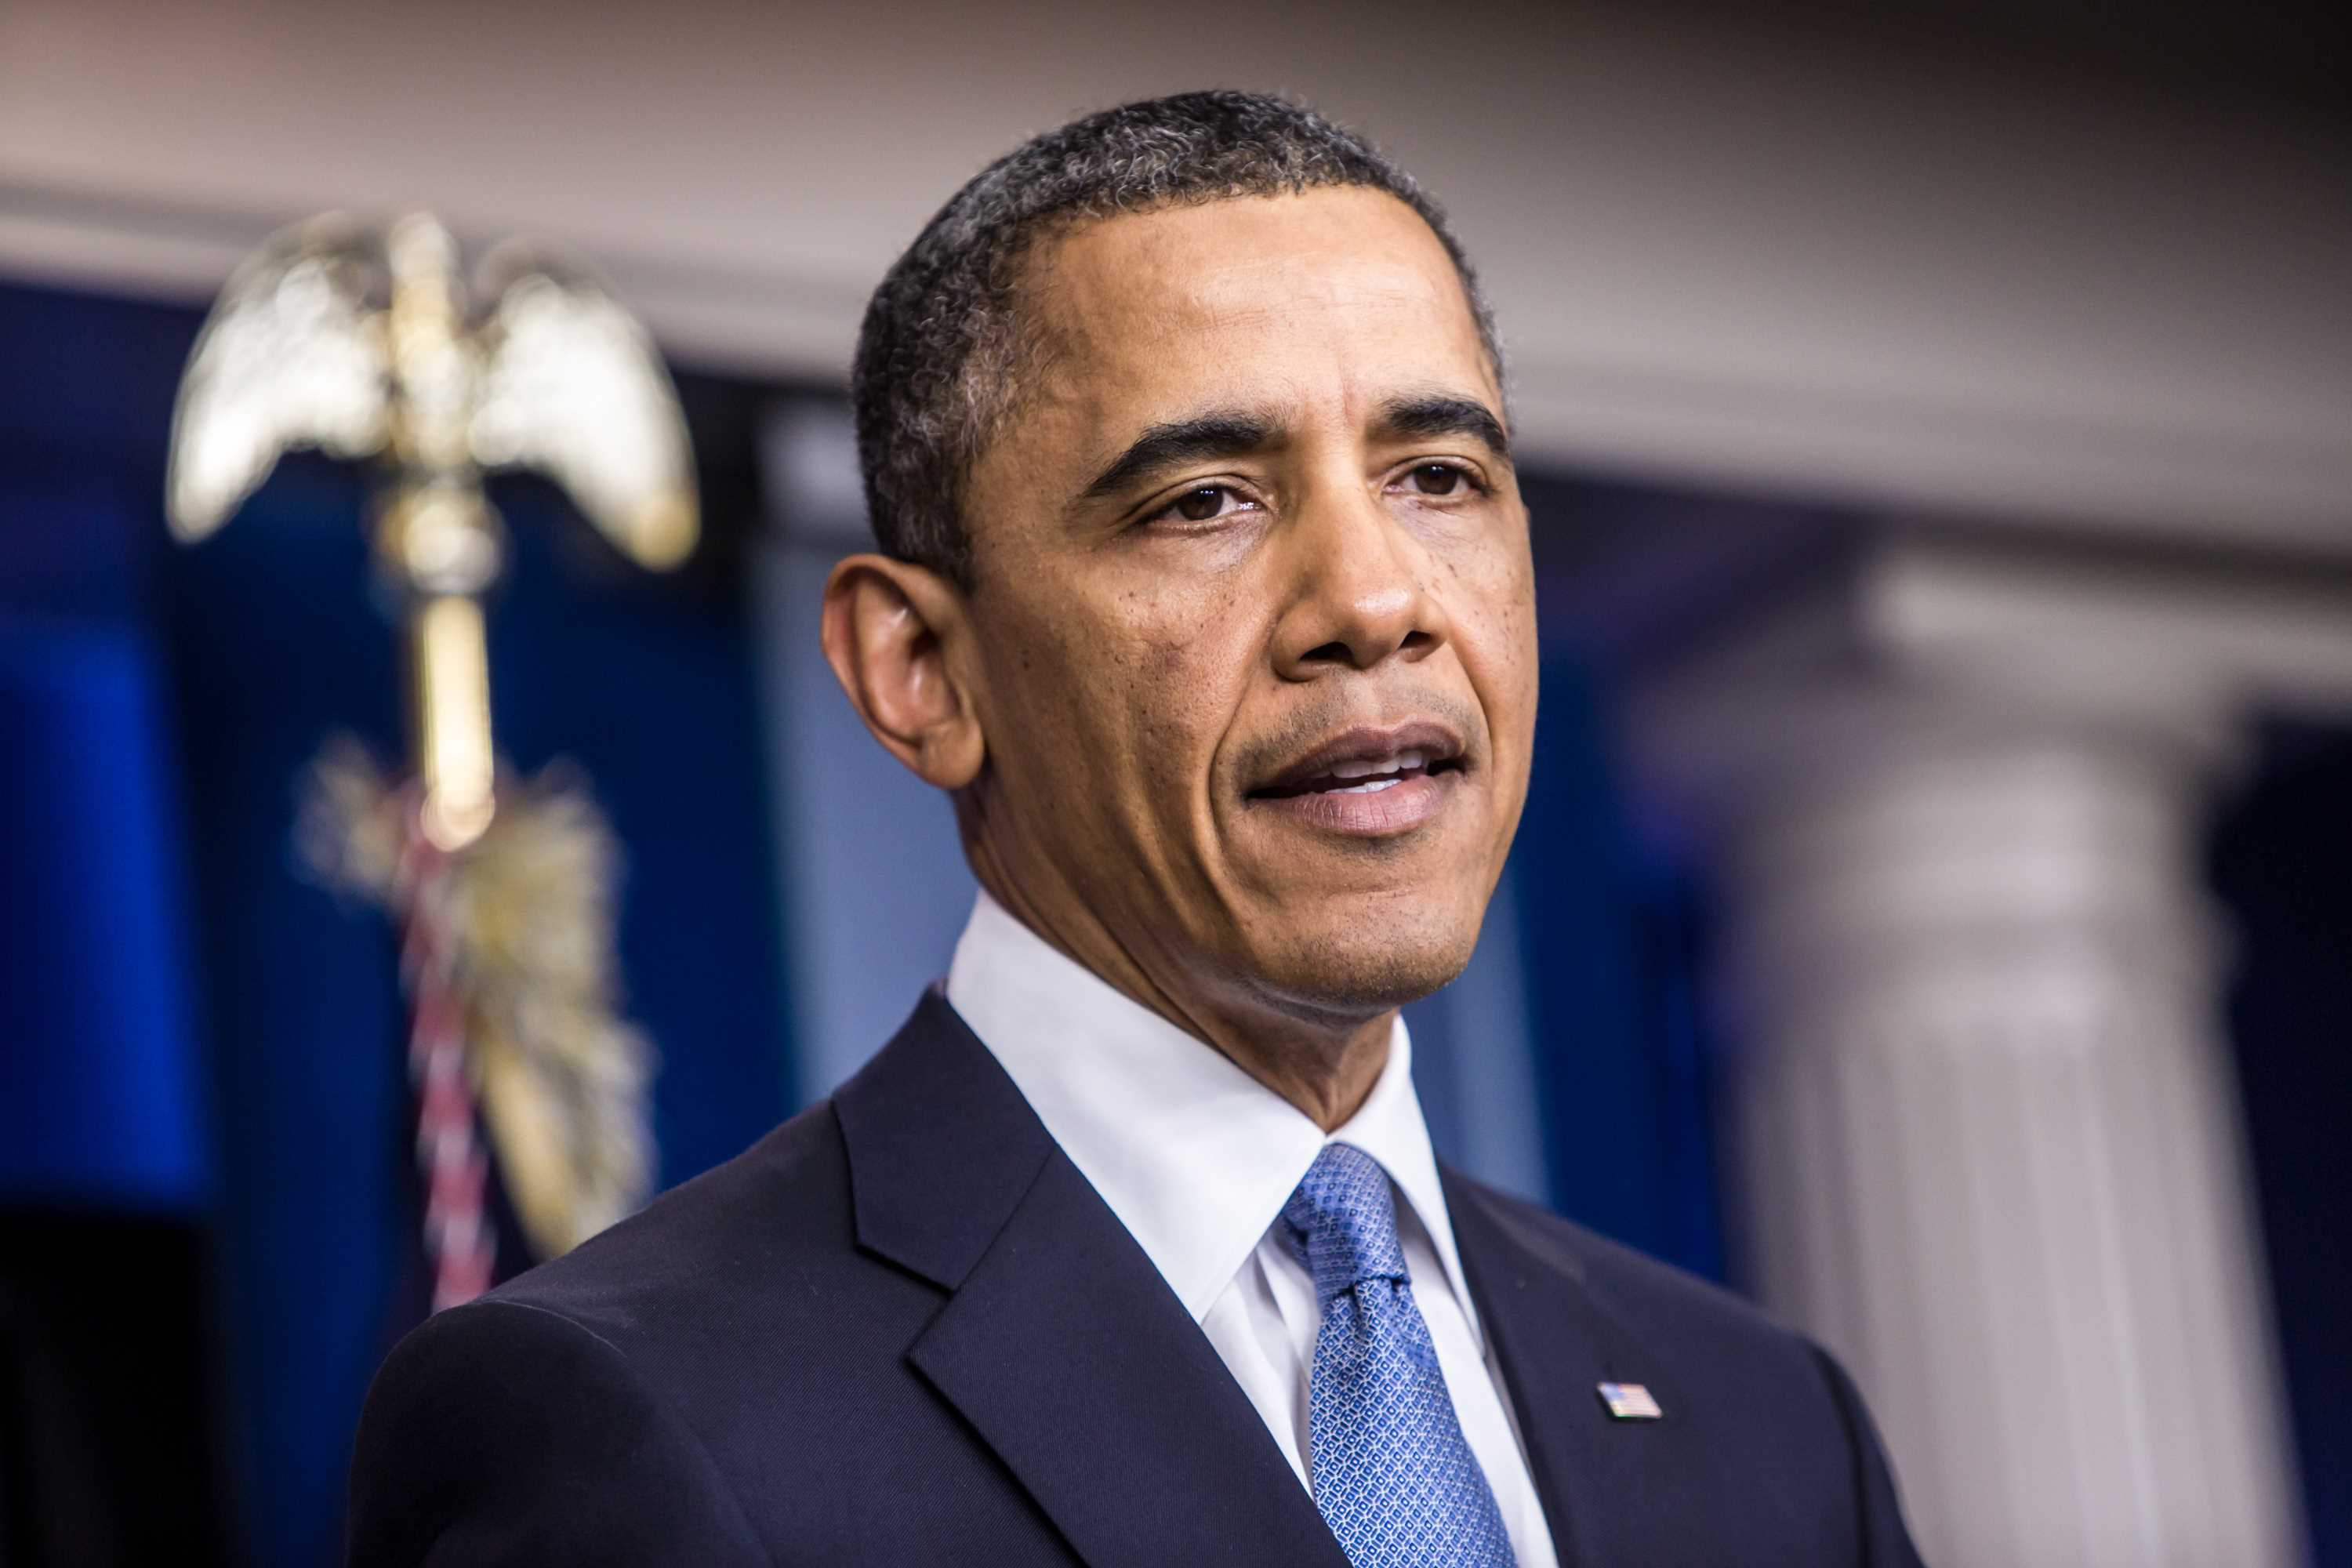 Obama signs Medicare Secondary Payer Act